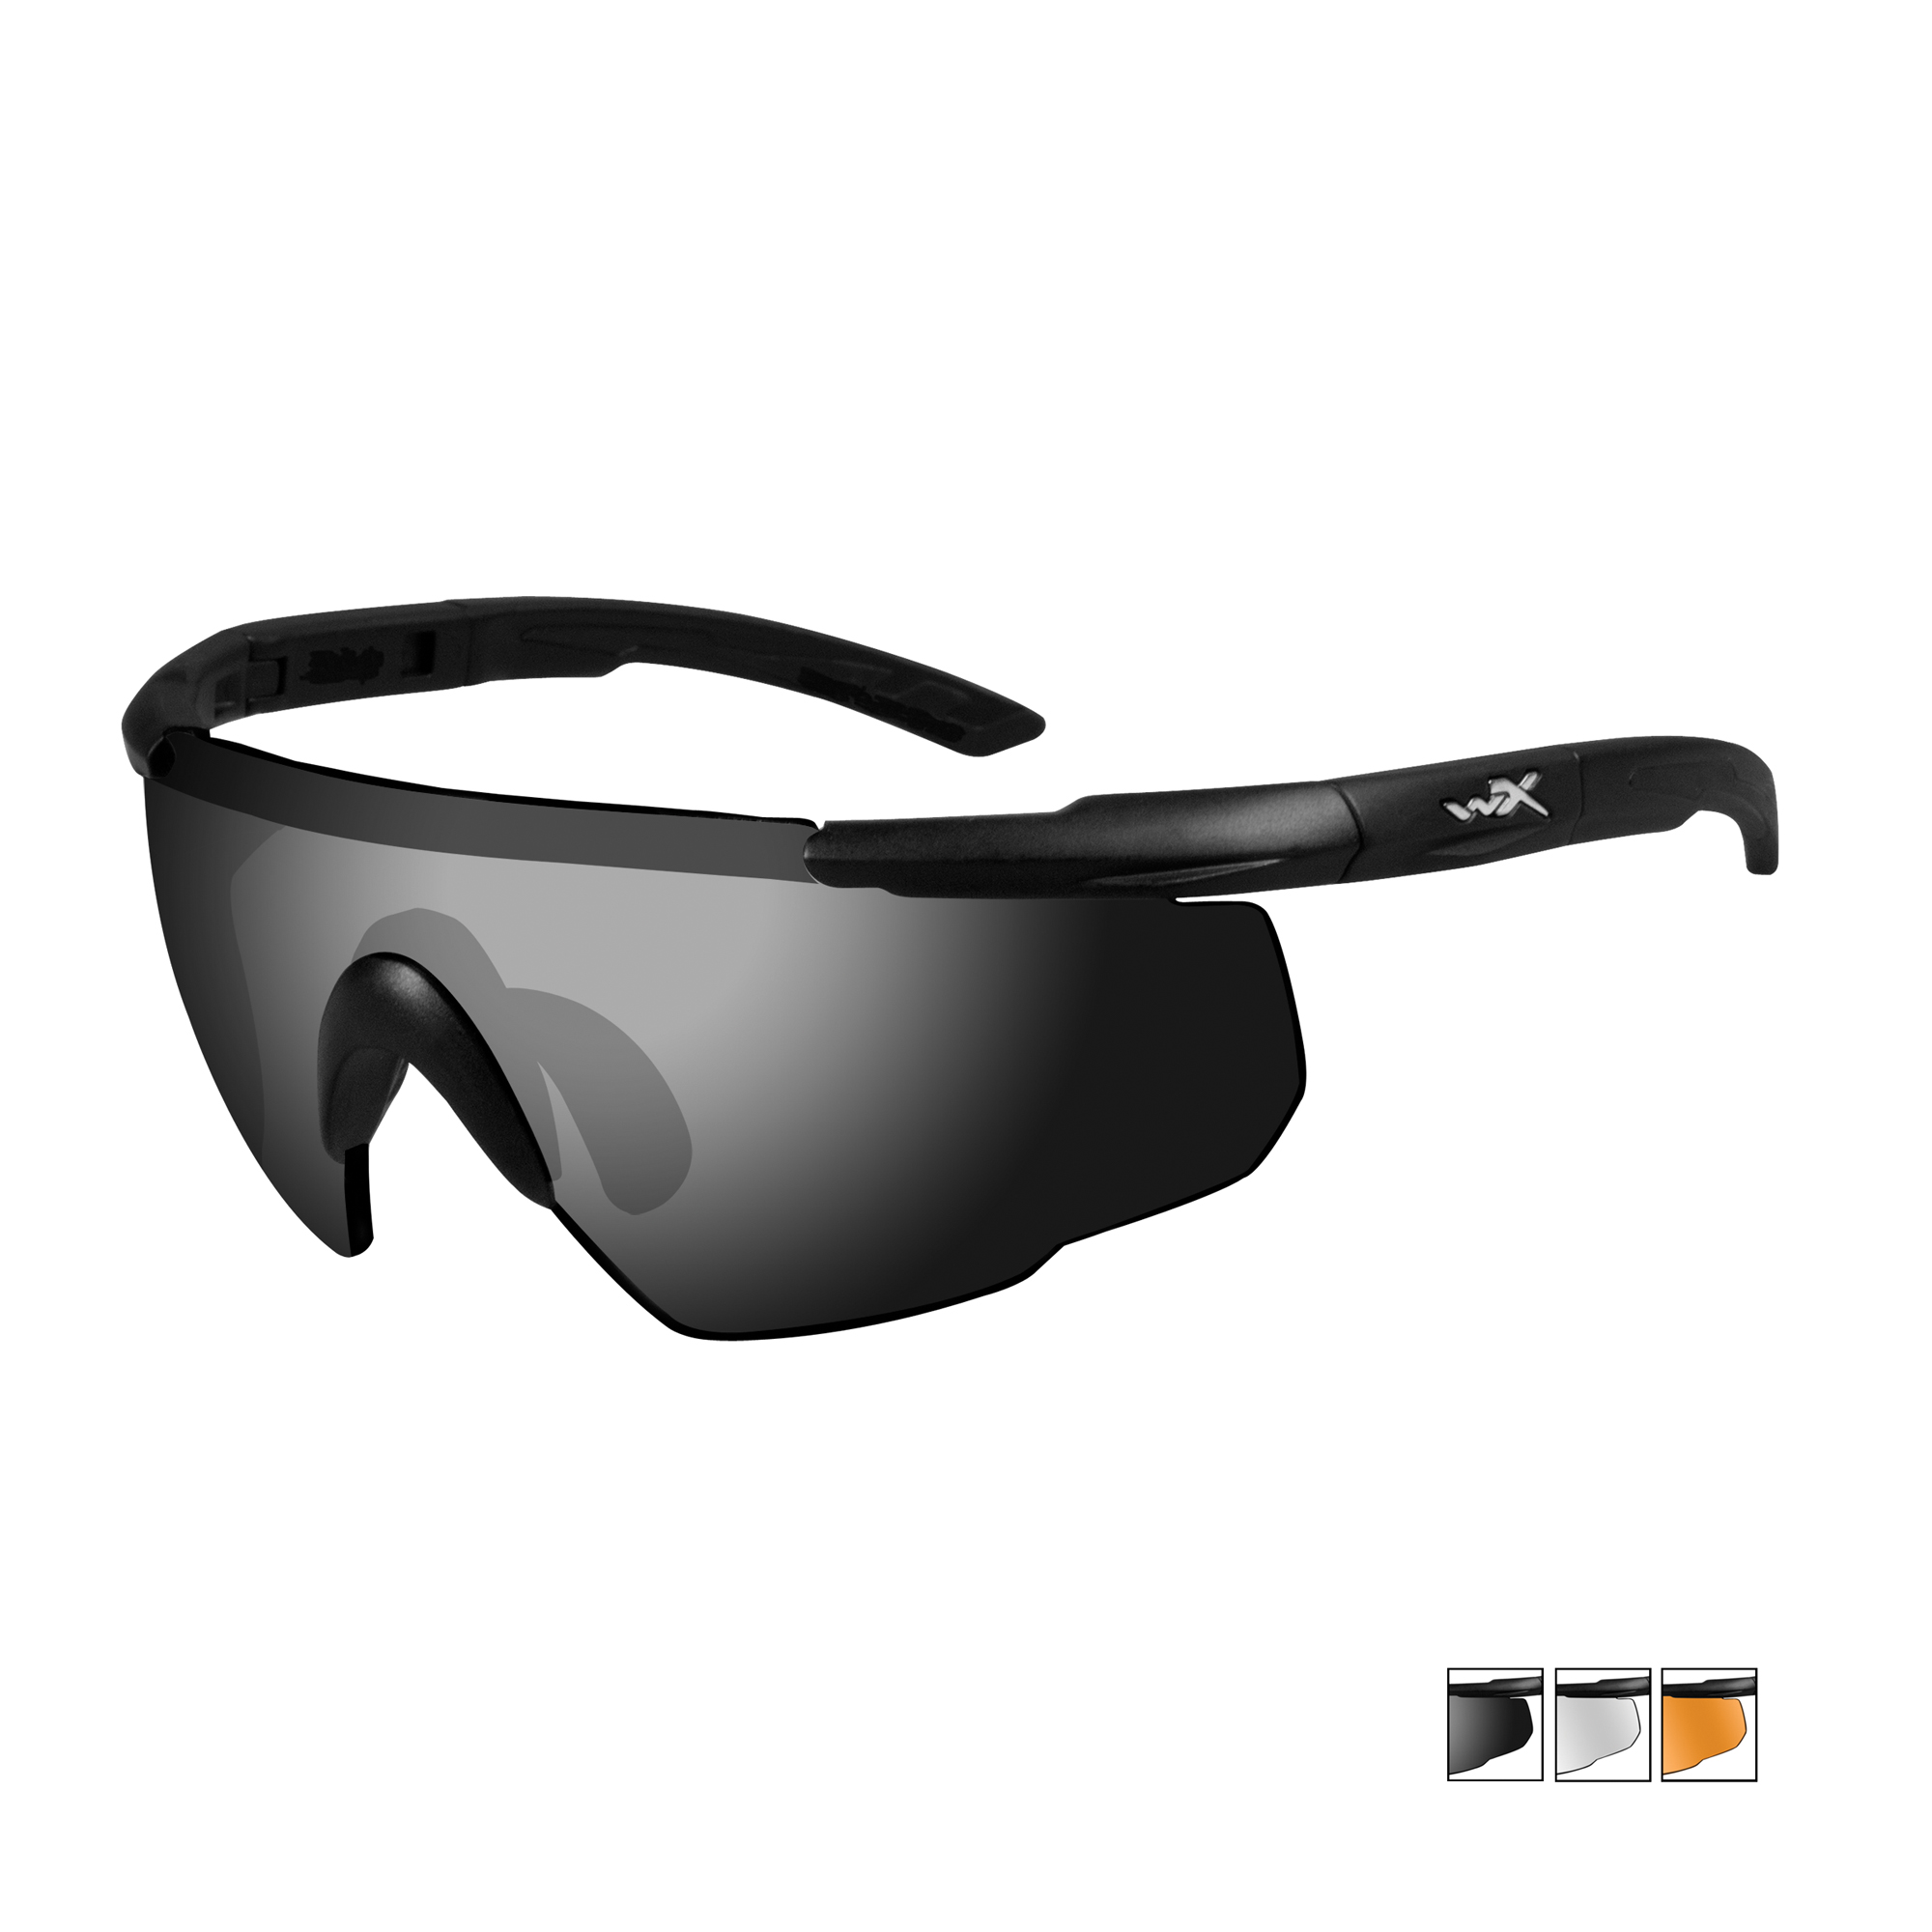 "Wiley X products endure the most extensive product testing in the industry. Every piece of eyewear meets the highest standards for safety and optical clarity. Wiley X is a world leader in the research"" development"" and marketing of protective eyewear for the military"" law enforcement"" and civilian markets."